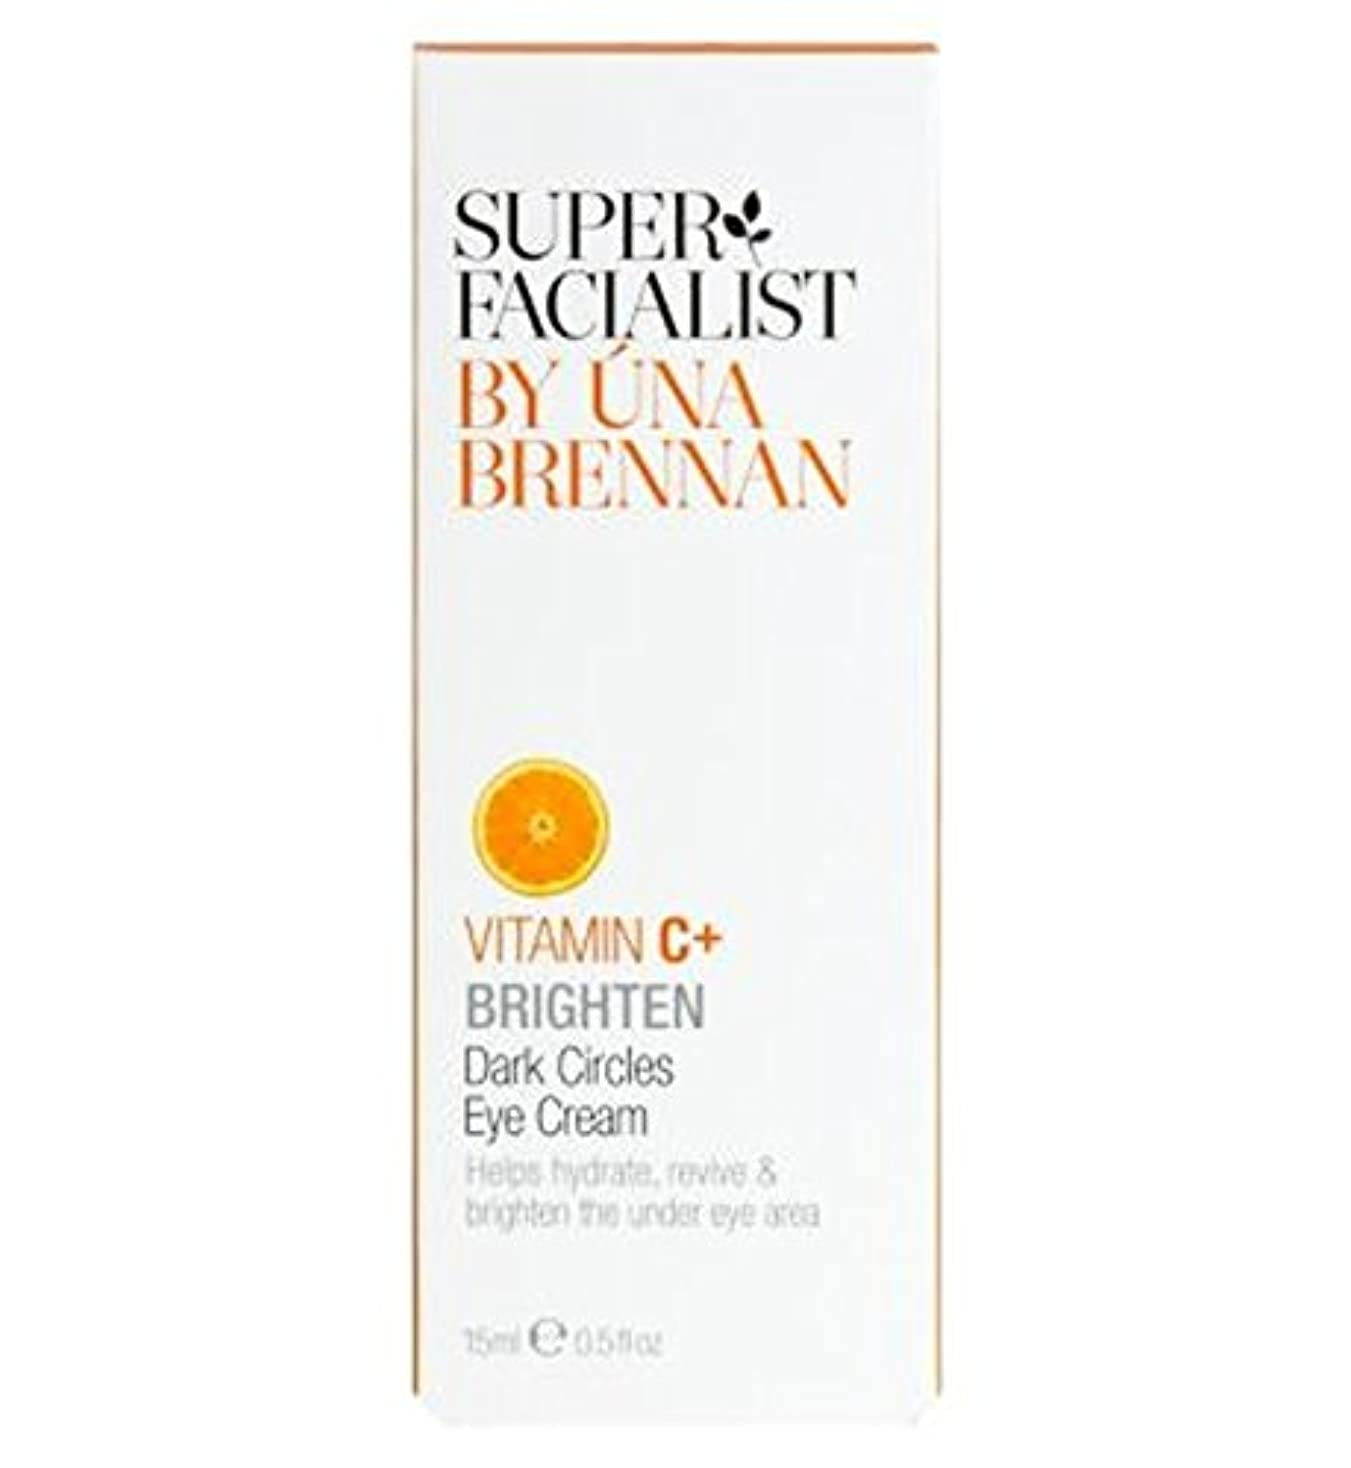 有効化褒賞振るうSuperfacialist Vitamin C+ Dark Circles Eye Cream 15ml - SuperfacialistビタミンC +くまアイクリーム15ミリリットル (Superfacialist)...